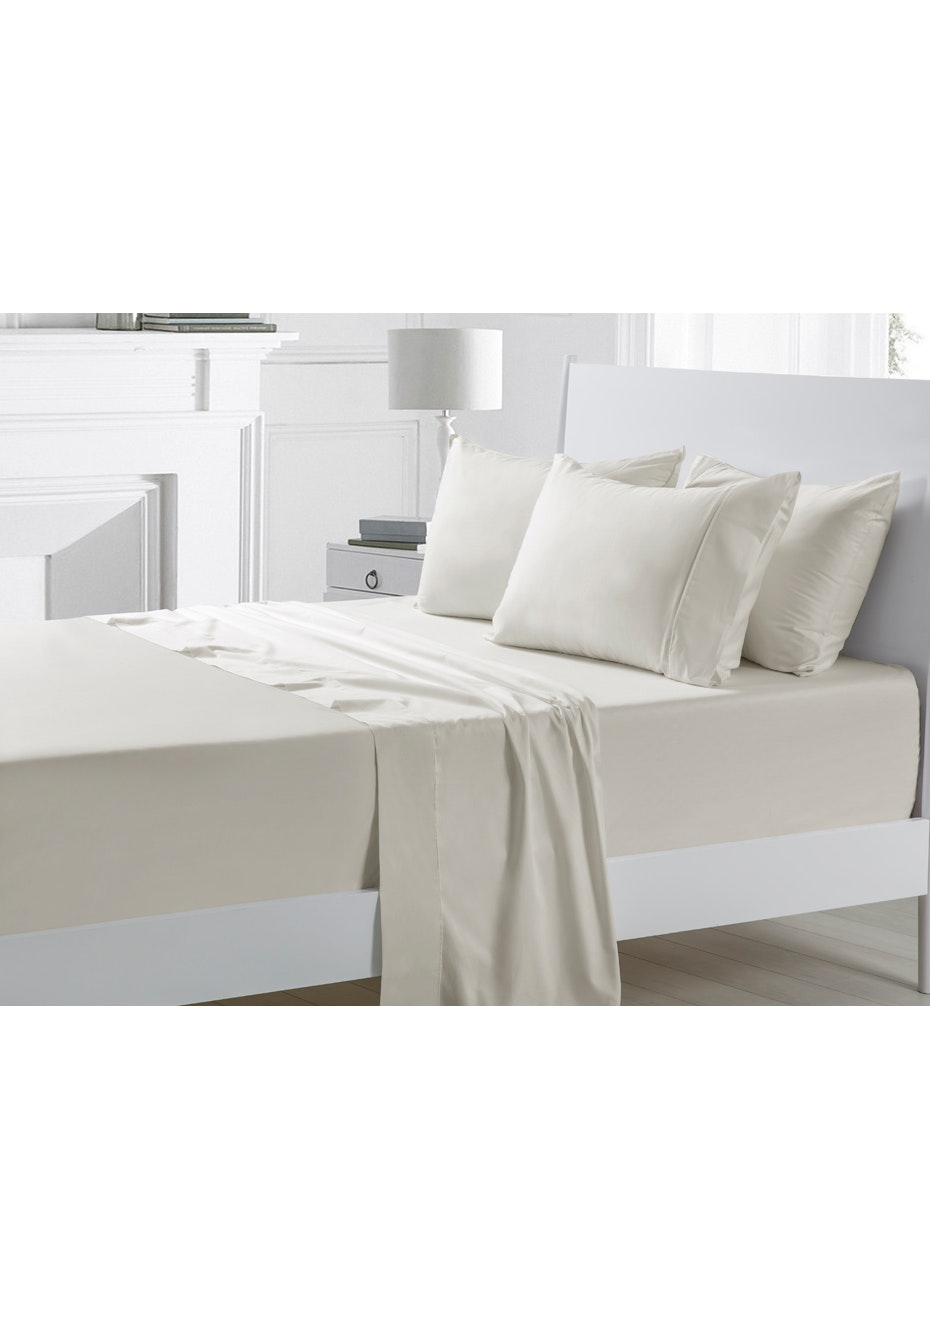 Silver 300TC Cotton Sateen Sheet Set - King Bed